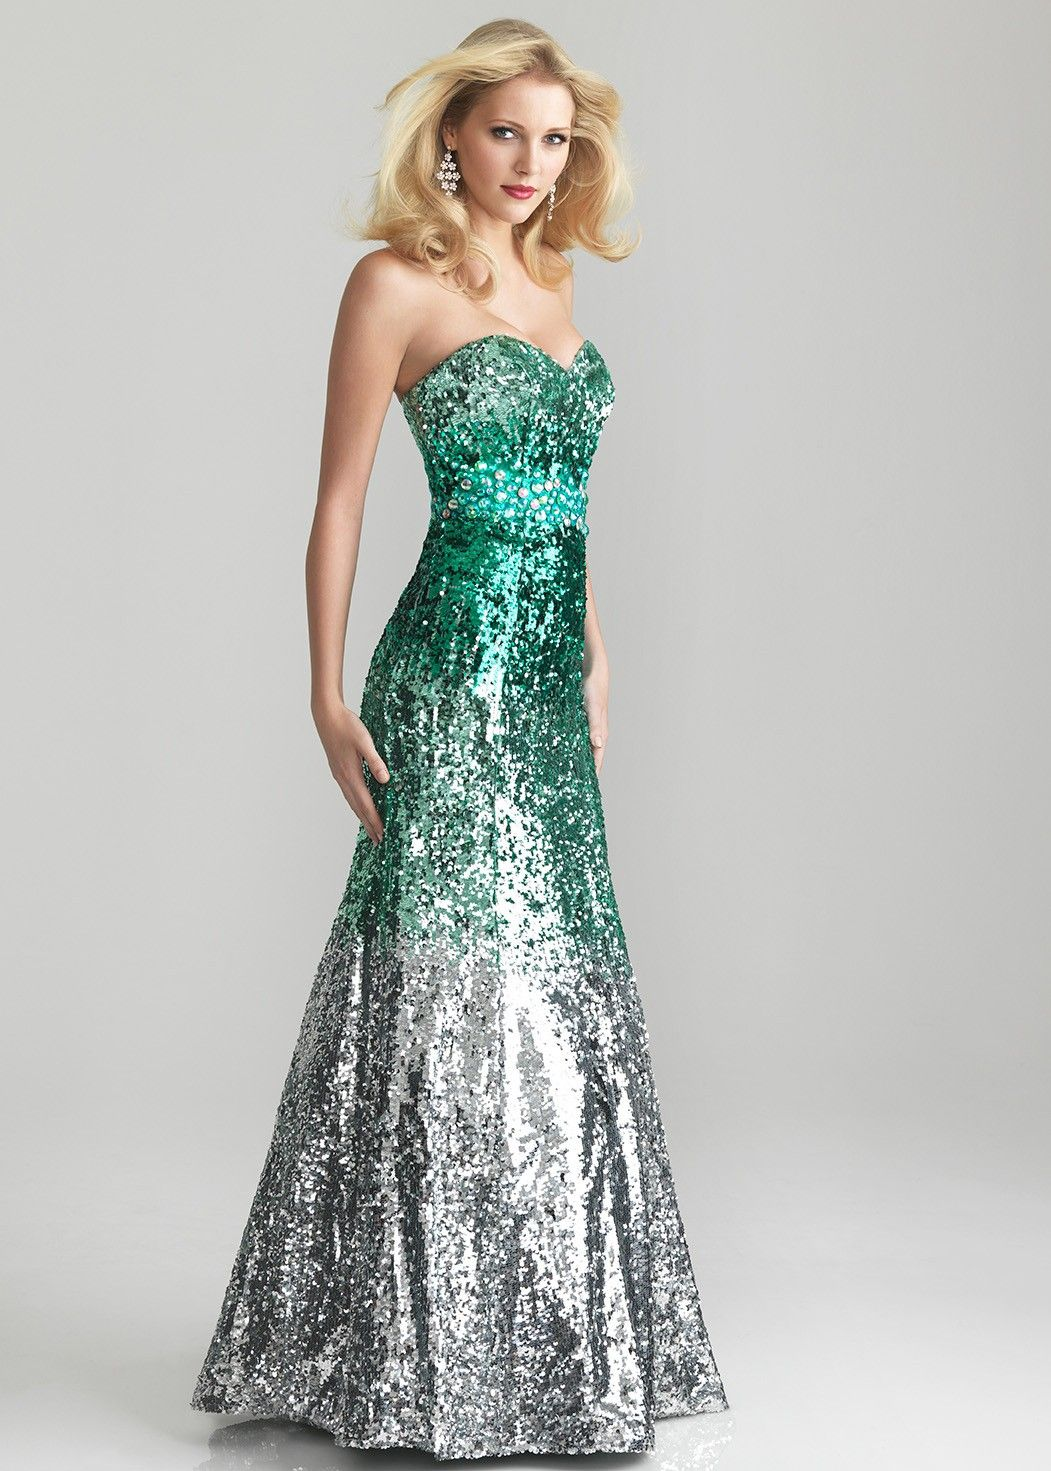 colorful ombre gowns - Google Search   Dresses   Pinterest   Ombre ...